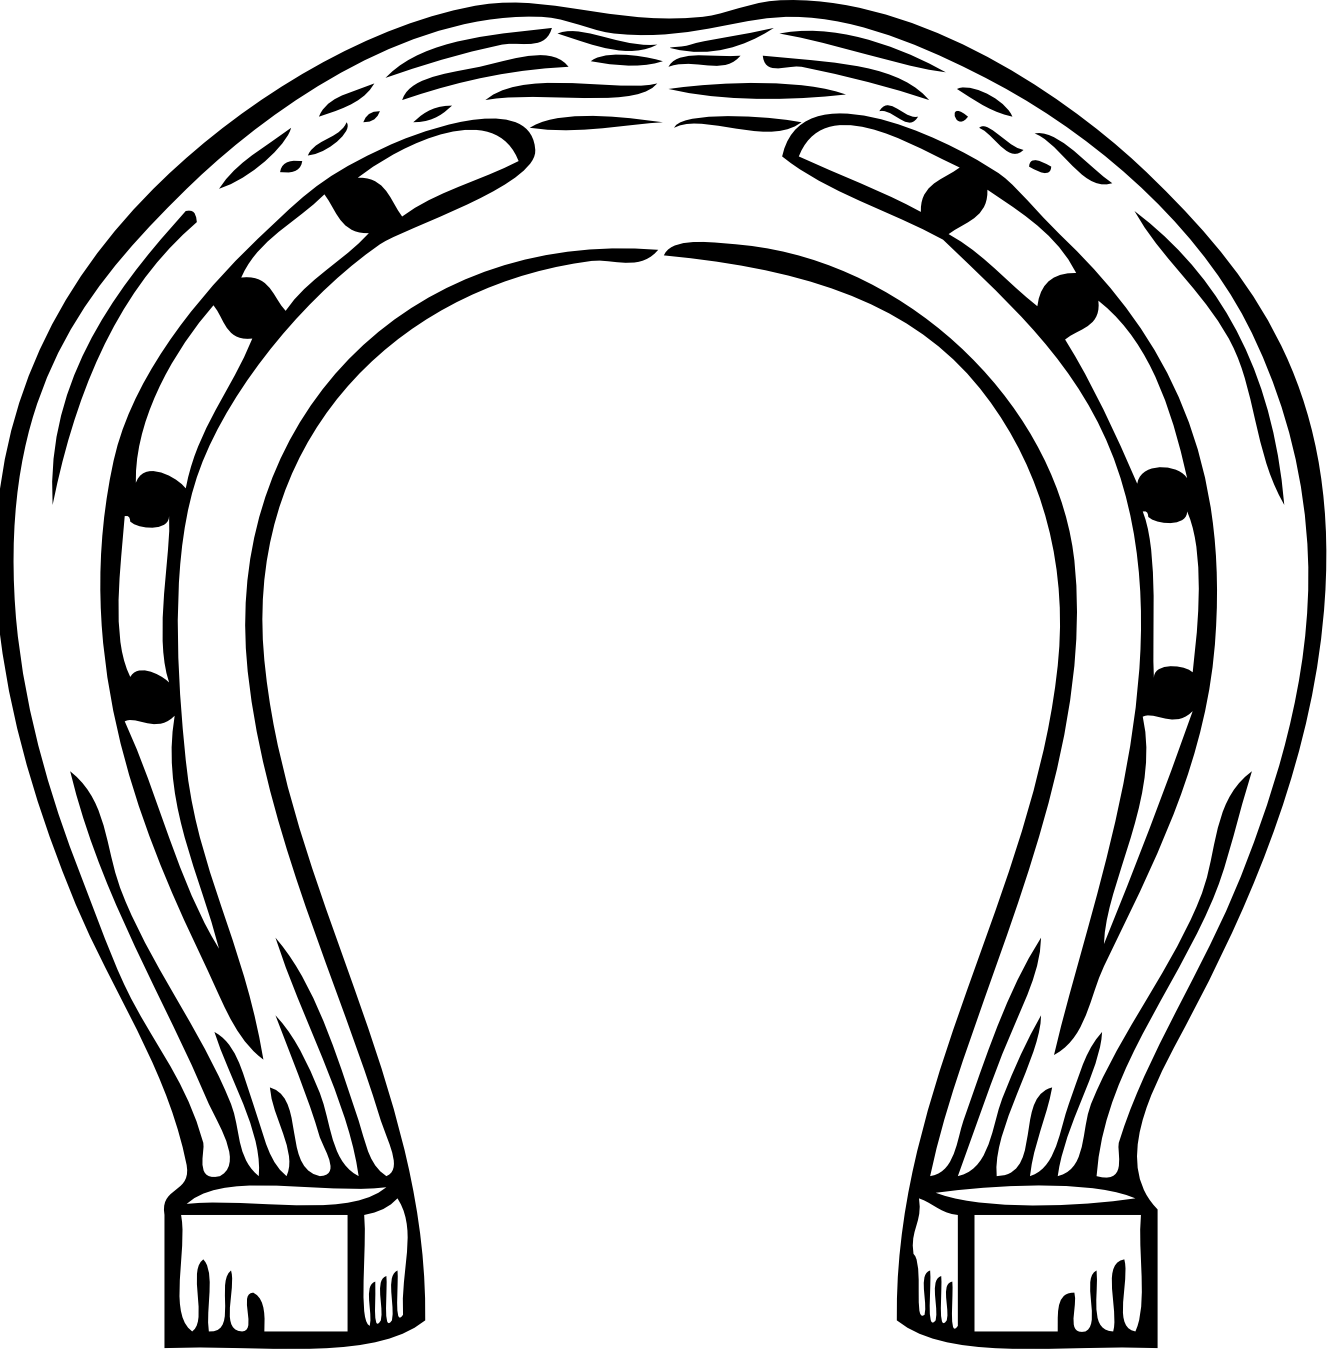 Horseshoes drawings